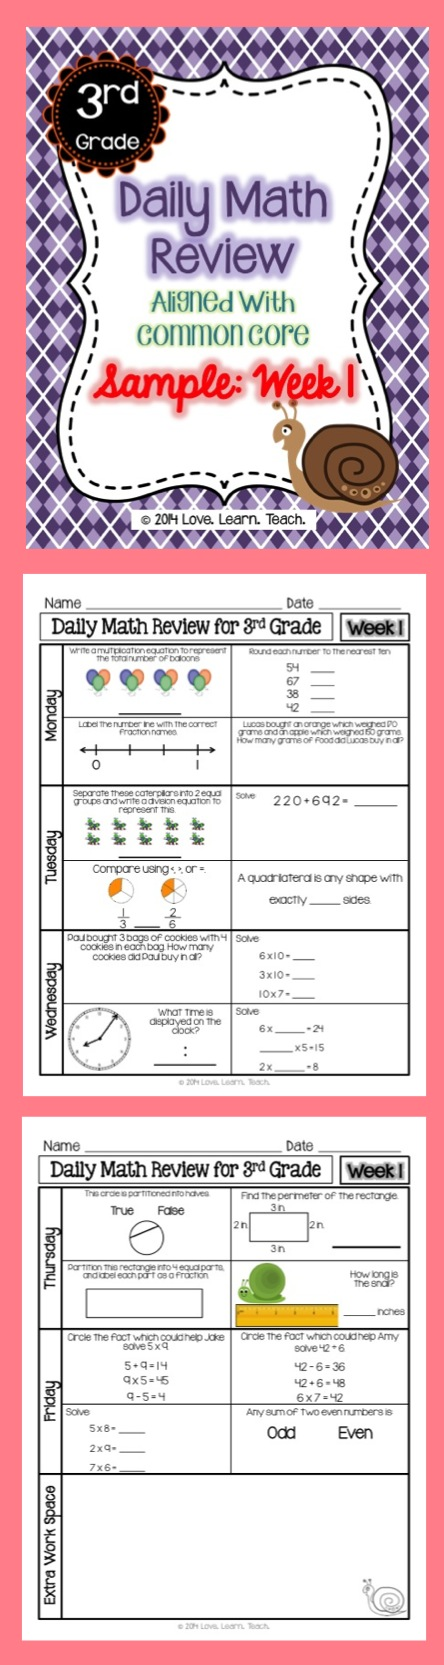 Free 1 Week Sample Of Spiral Daily Math Review For 3rd Grade